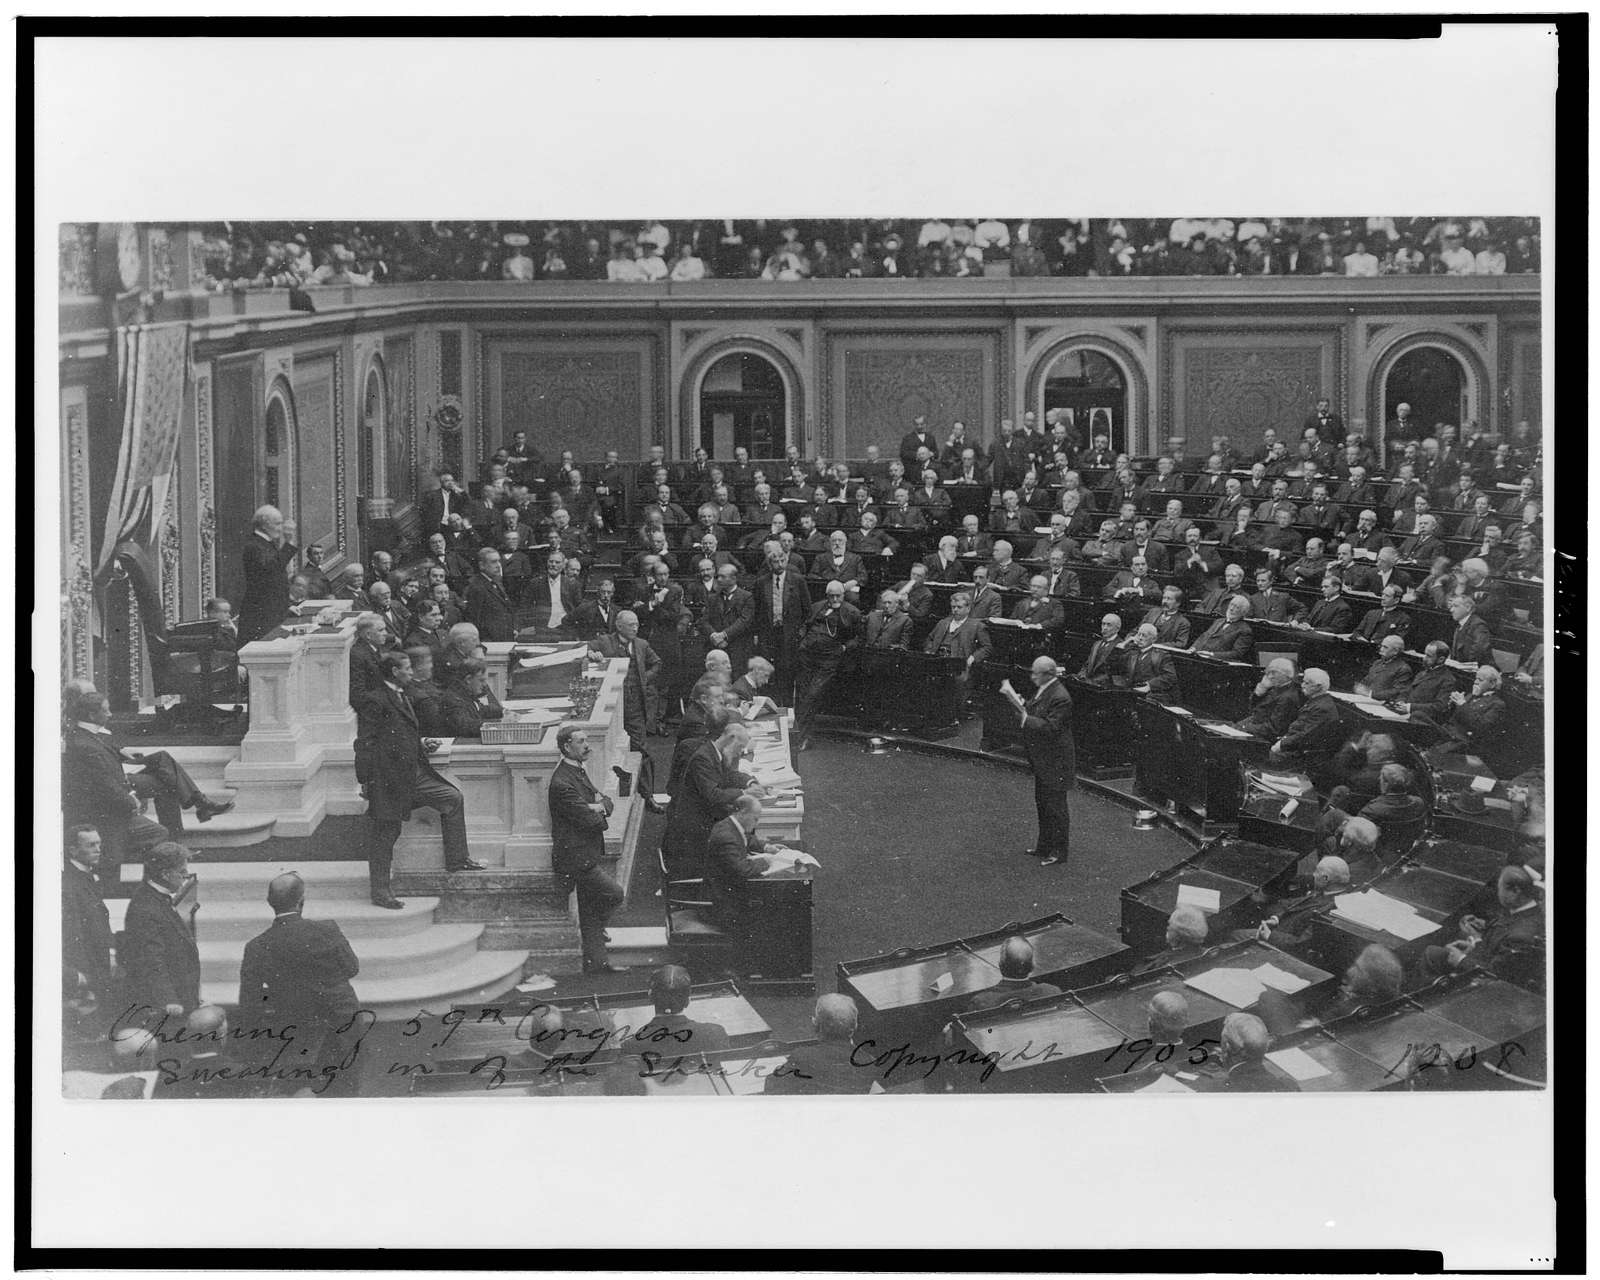 [Opening ceremonies of the U.S. 59th Congress, 2nd session, 1906, with Speaker Joseph Cannon presiding]